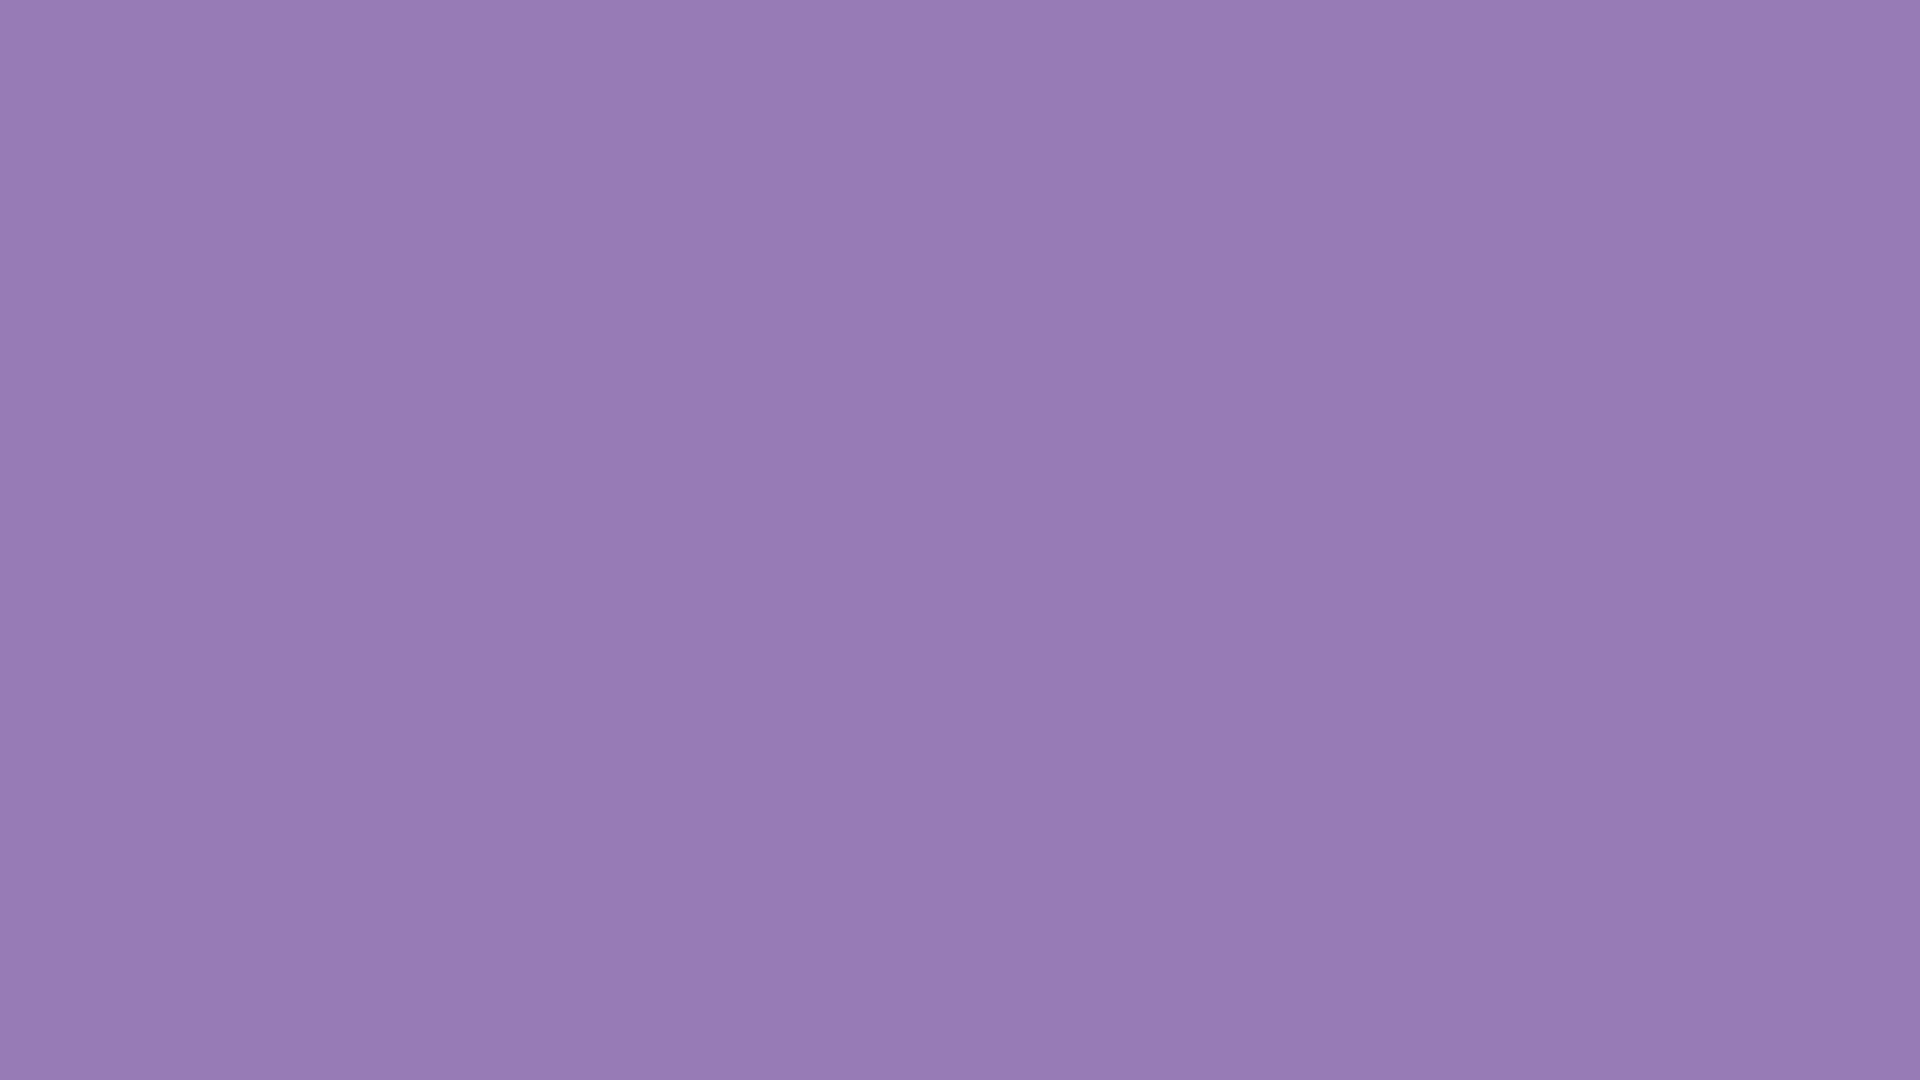 1920x1080 lavender purple solid color background